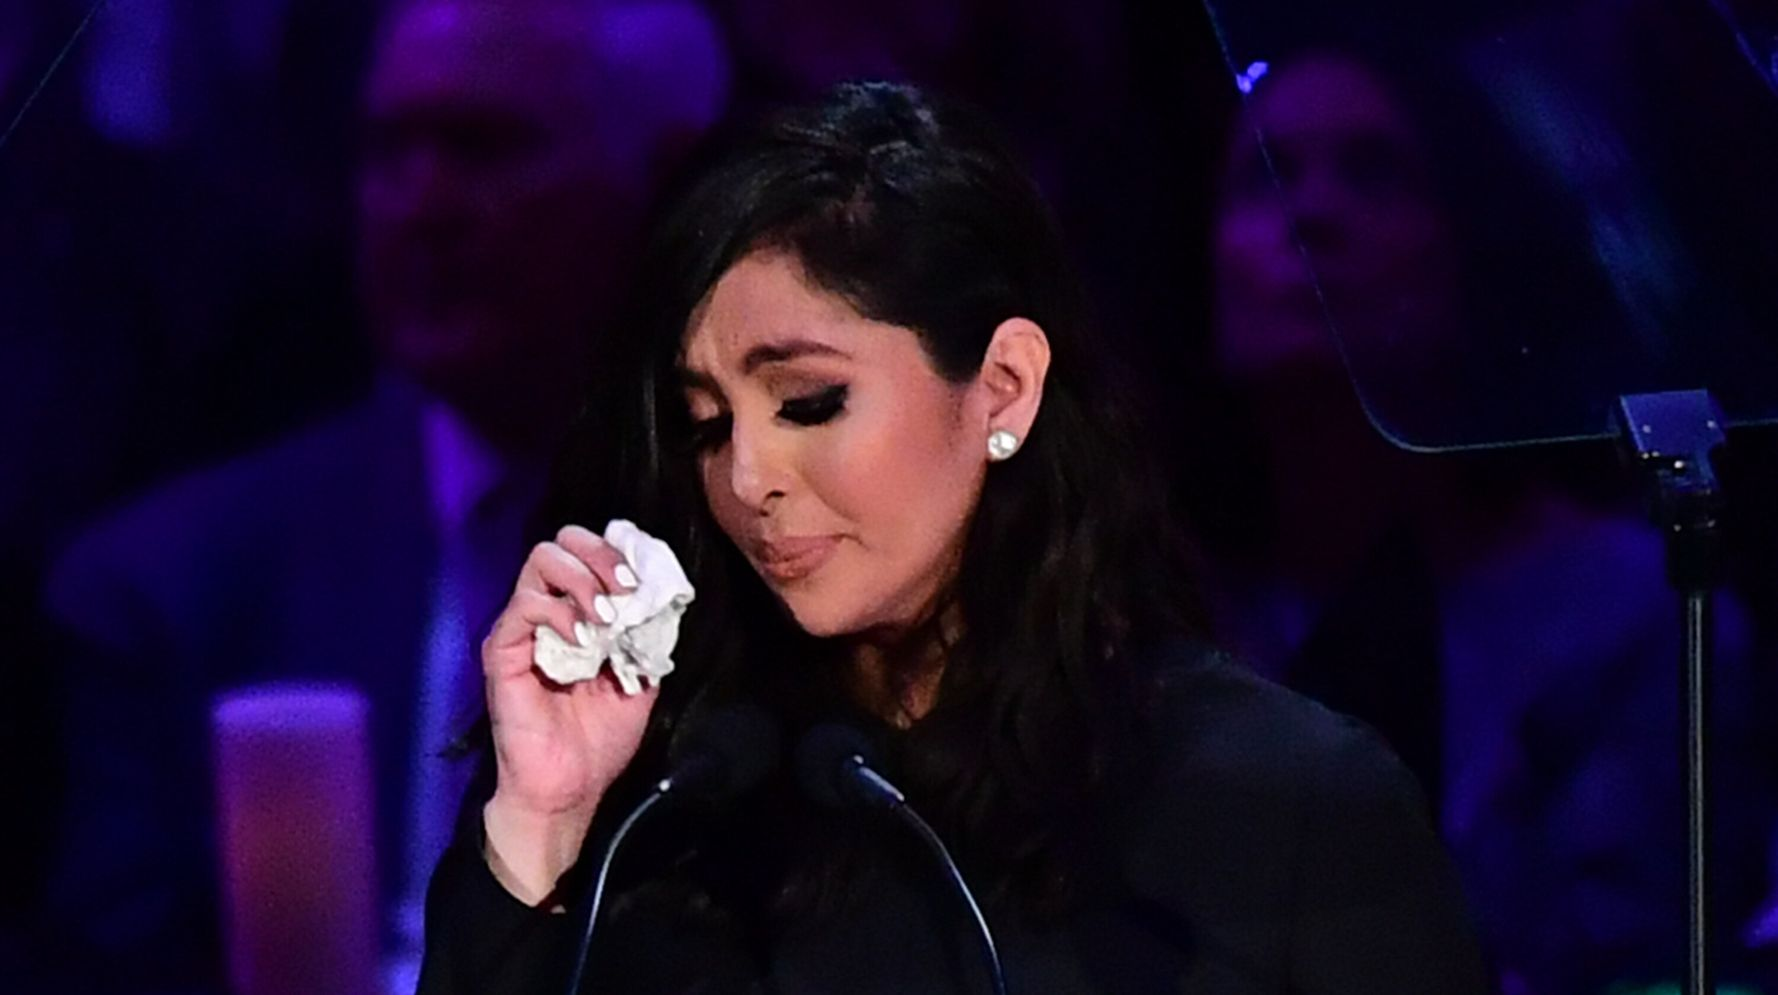 Westlake Legal Group 5e5423d22300002c080bf10d Vanessa Bryant Tearfully Honors Kobe Bryant, Gianna Bryant At Memorial Ceremony